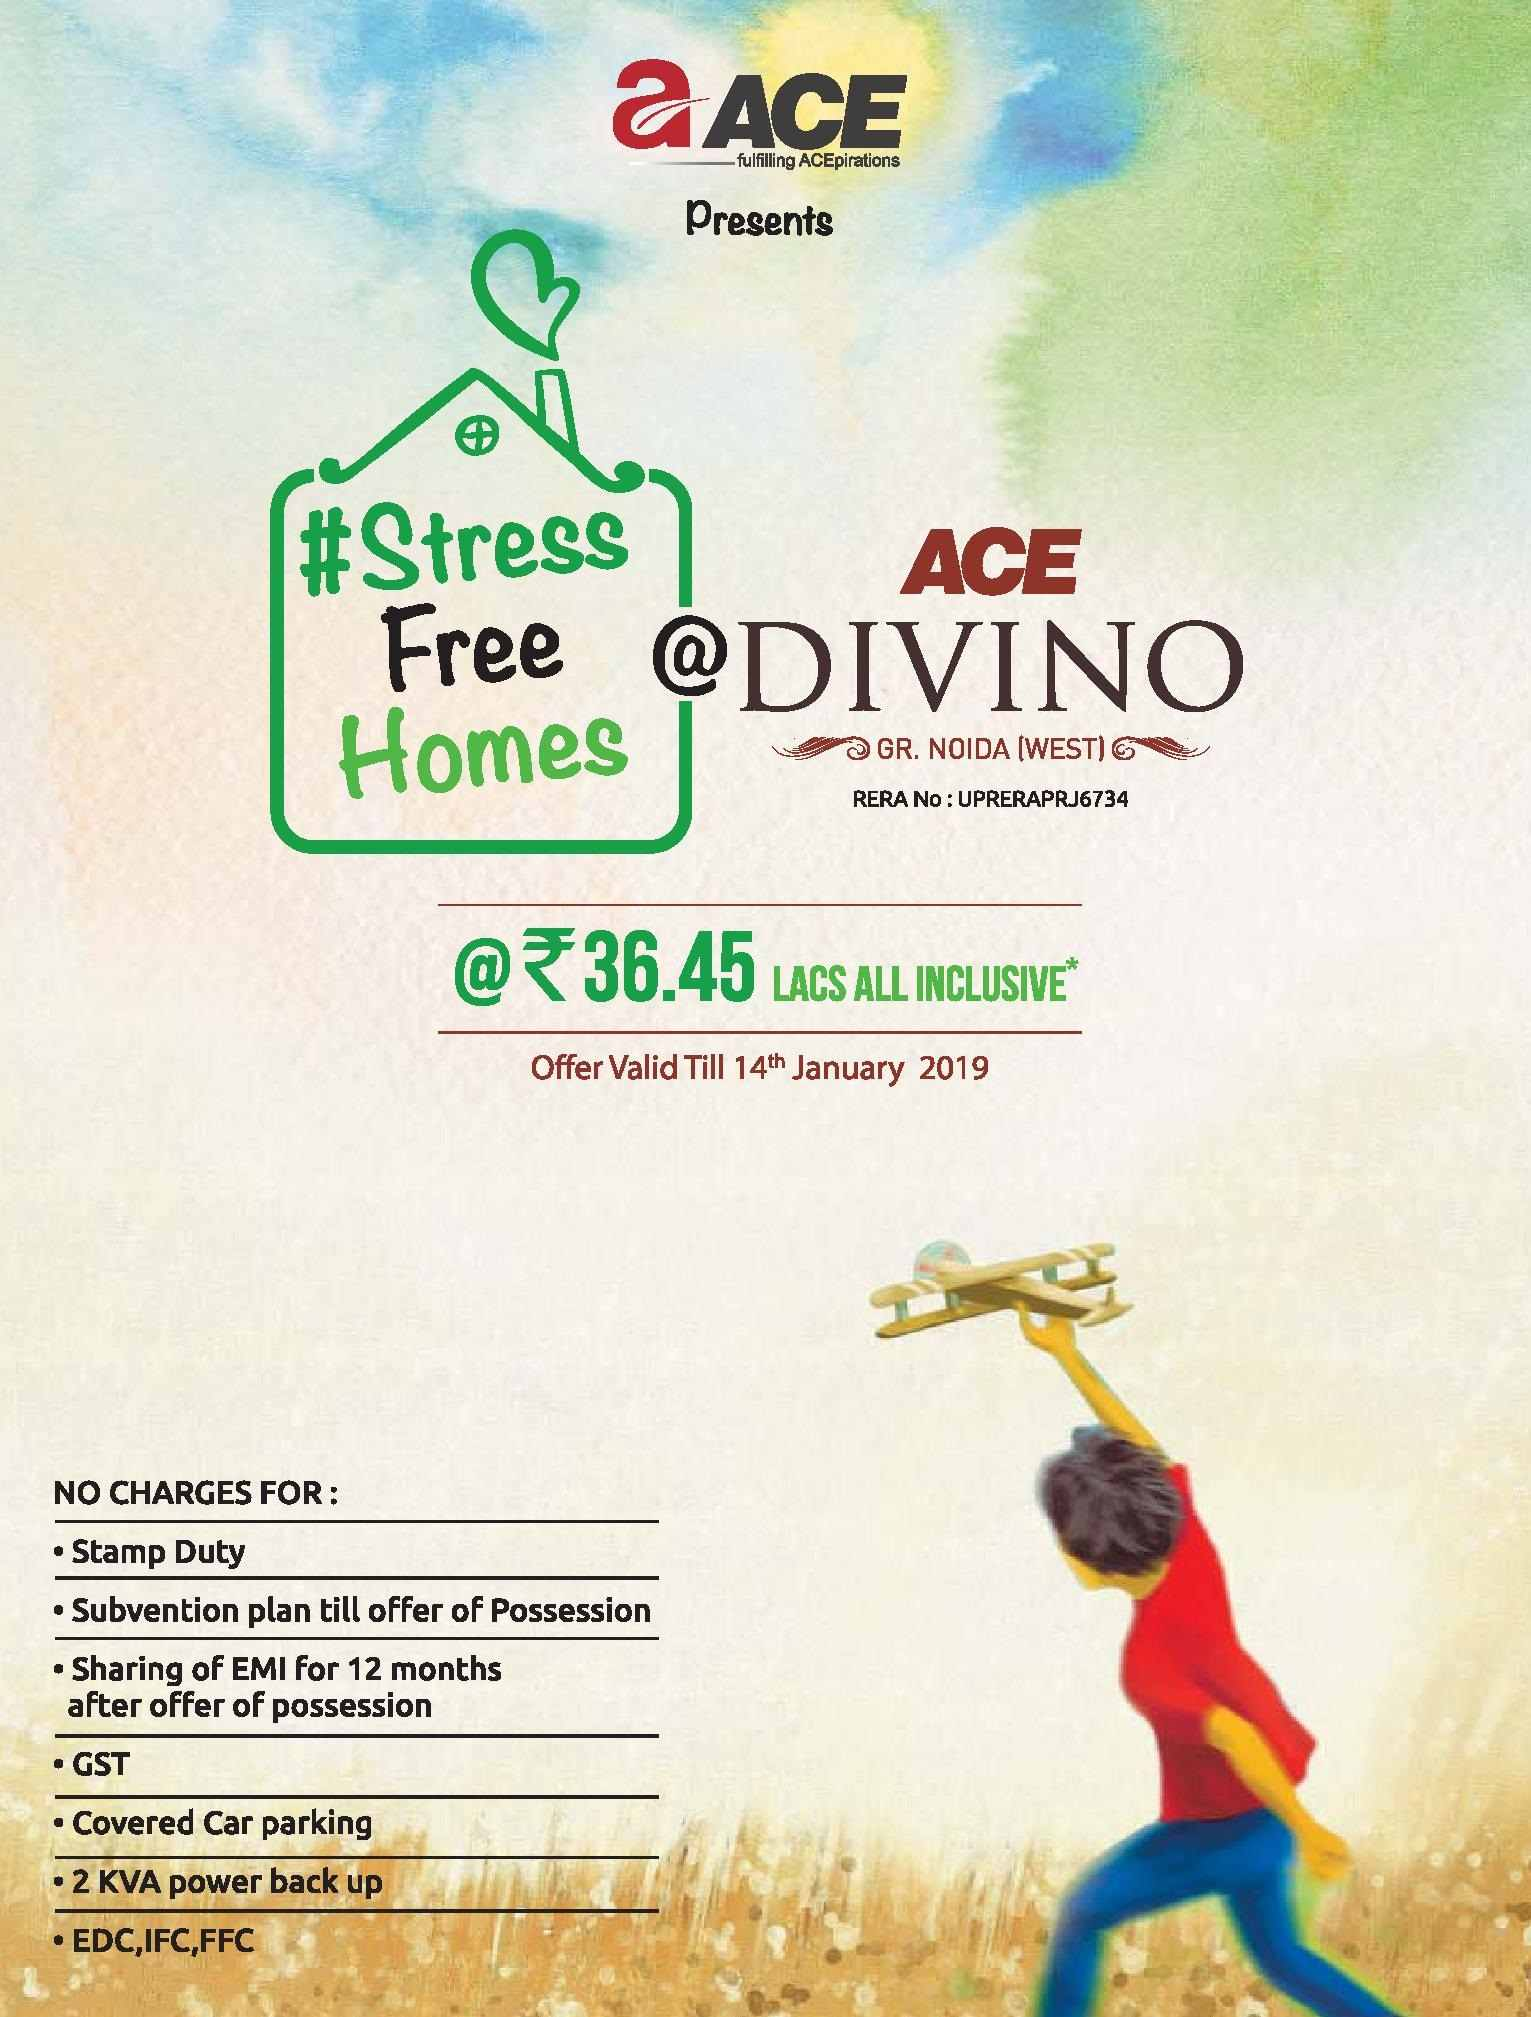 Book home Rs 36 45 Lacs at Ace Divino in Noida